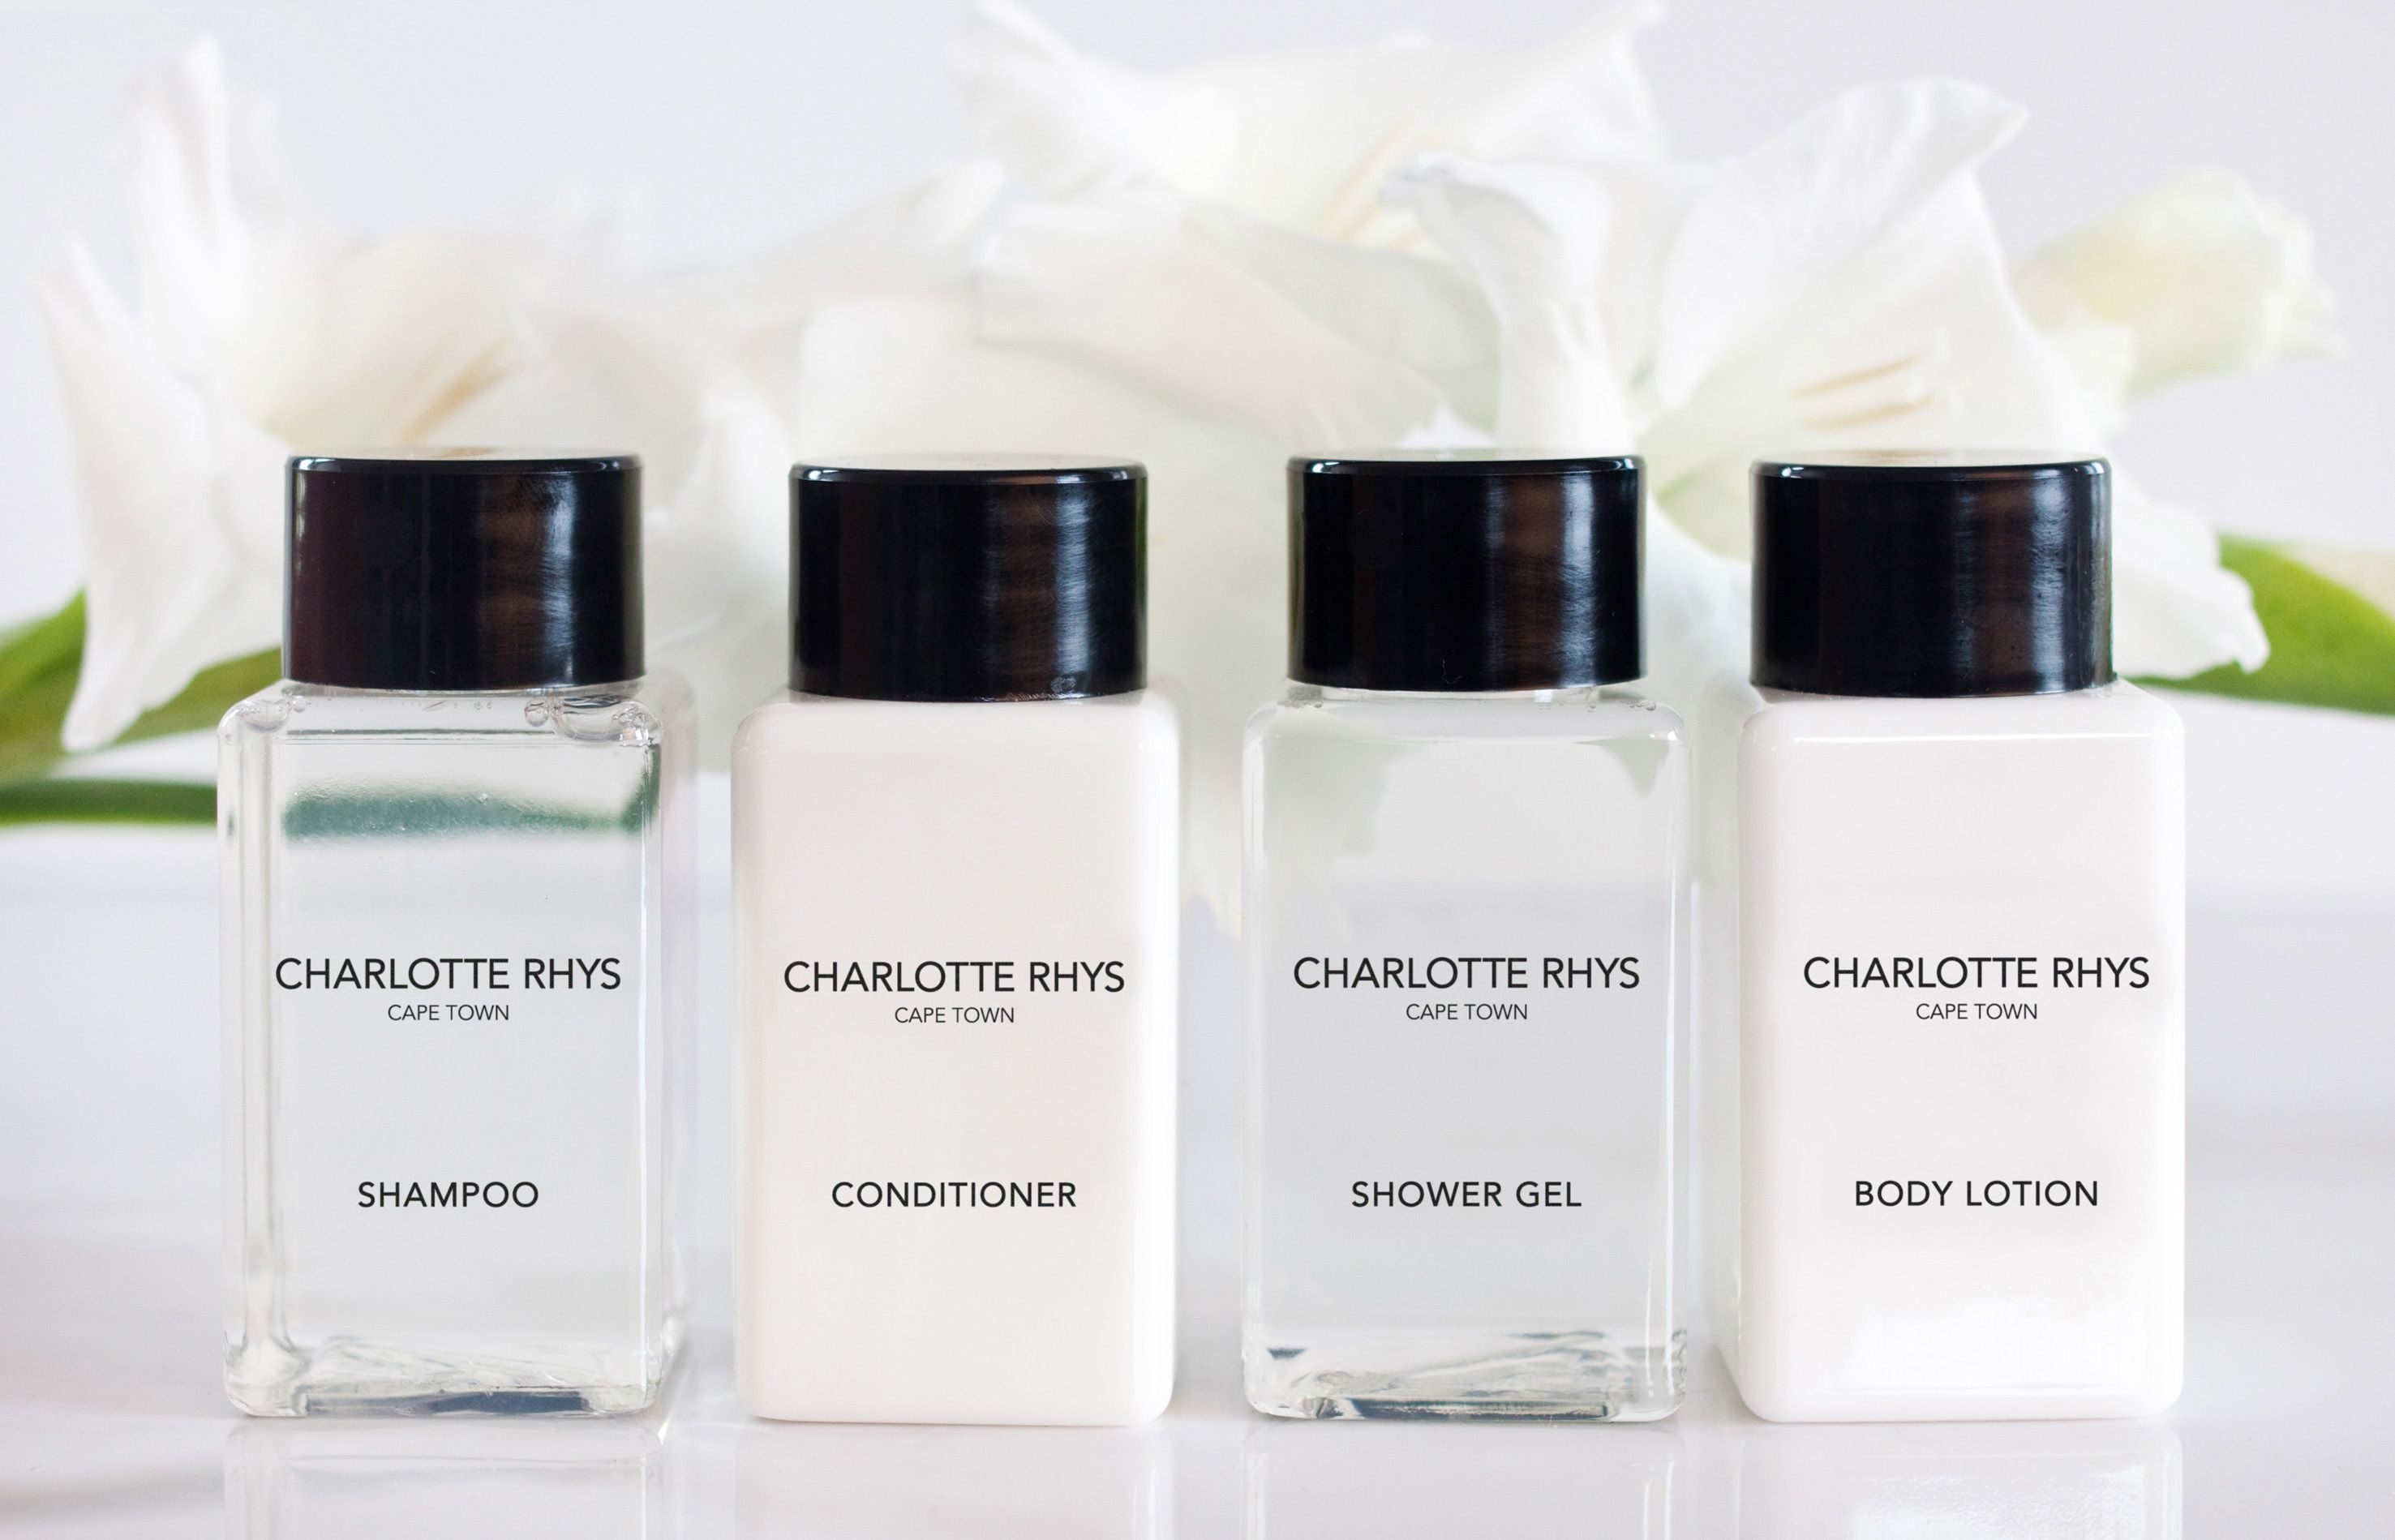 Pin On Hotel Toiletries By Charlotte Rhys